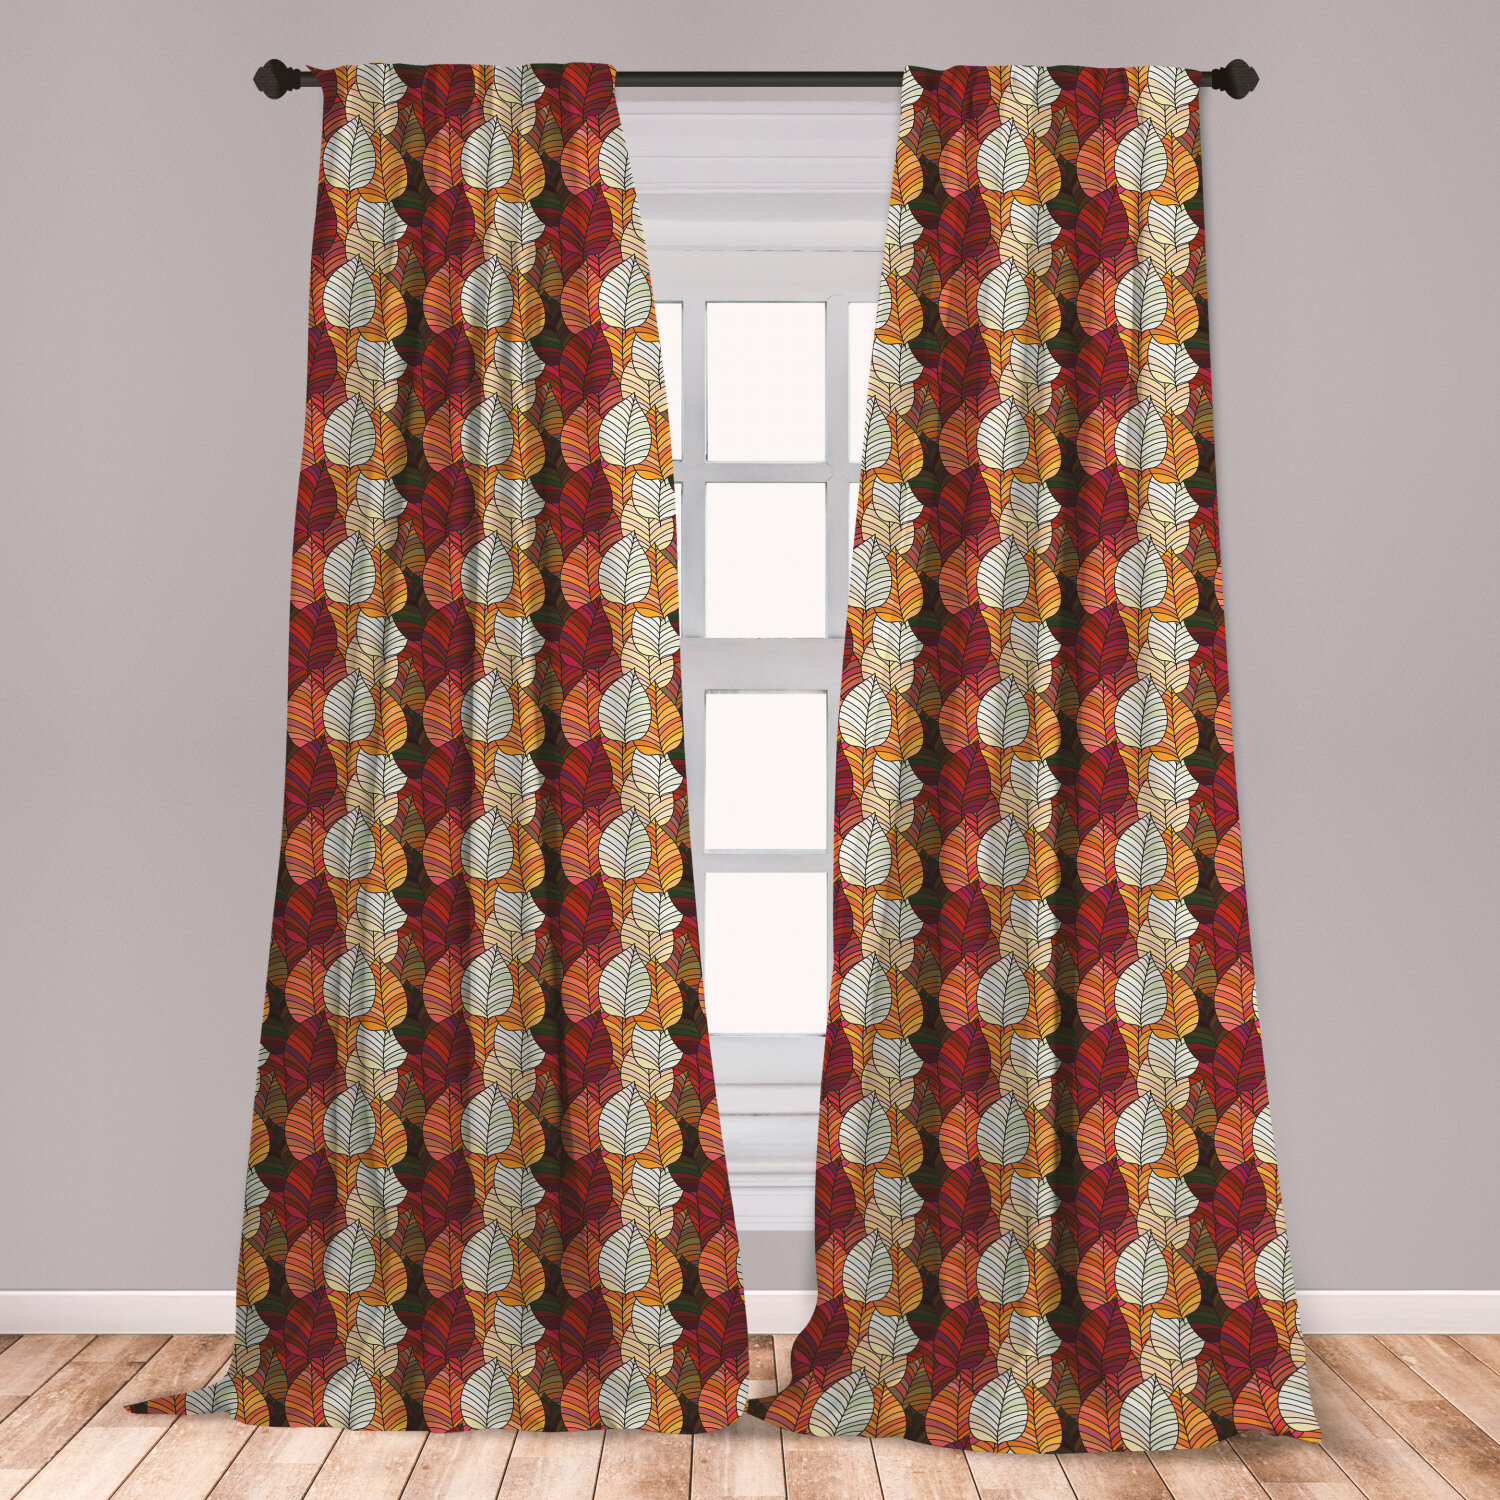 East Urban Home Fall Leaves Floral Room Darkening Rod Pocket Curtain Panels Wayfair